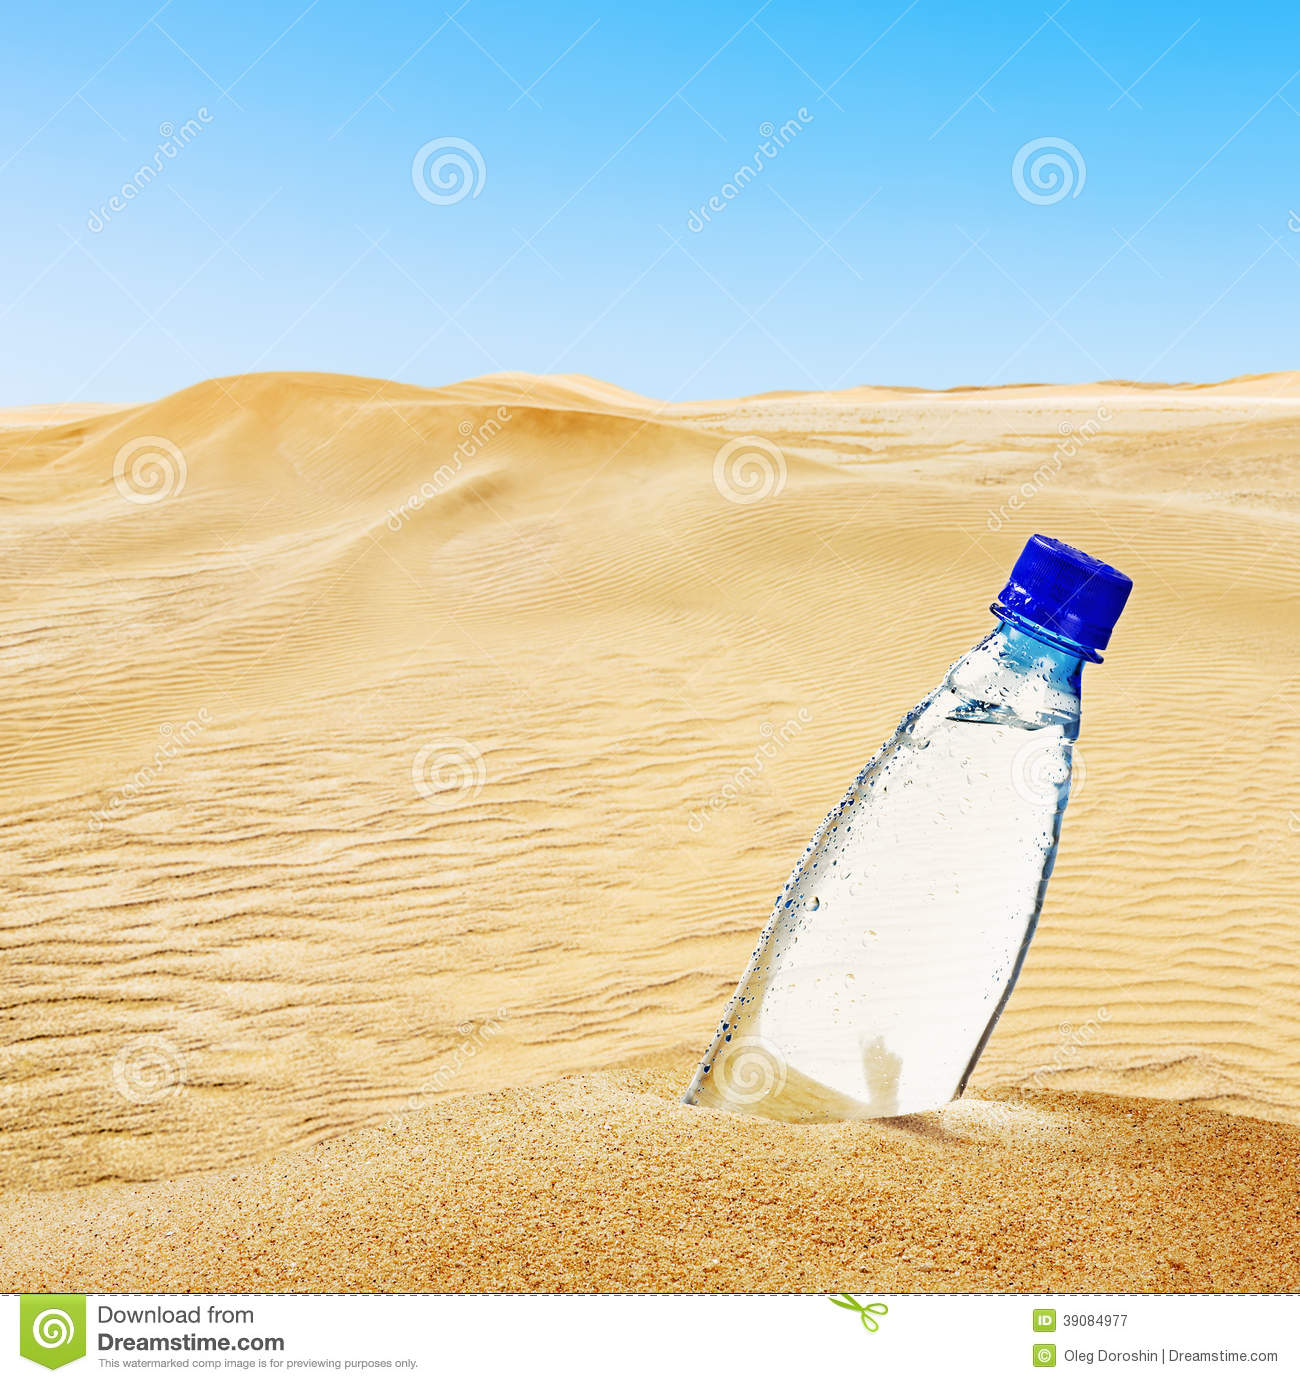 Bottle Of Mineral Water On The Sand Stock Image - Image ...